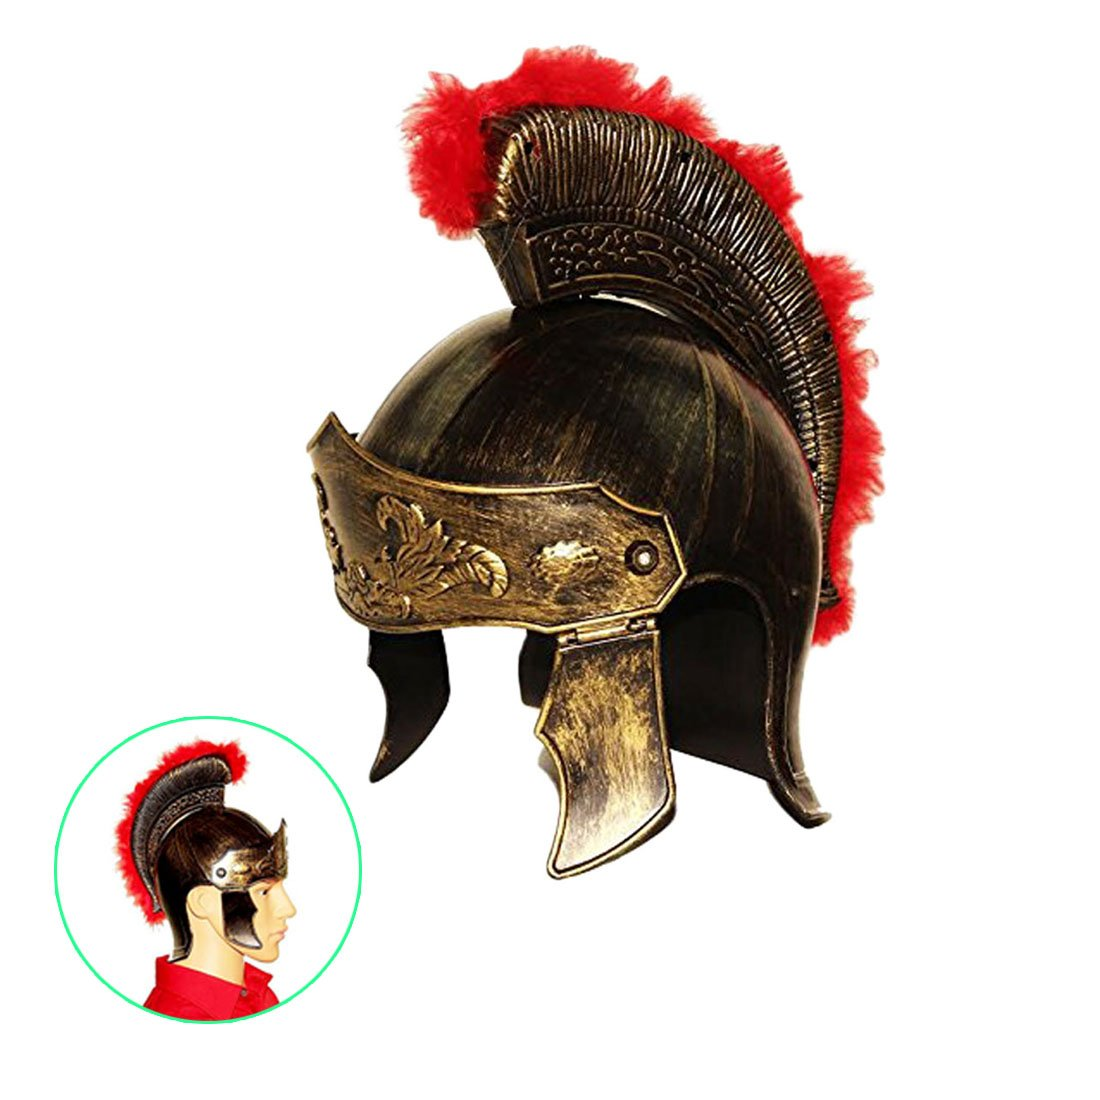 dazzling toys Roman Legion Gladiator Helmet Hat -For Big Kids, Teens and Adults.,Gold,Medium by Dazzling Toys